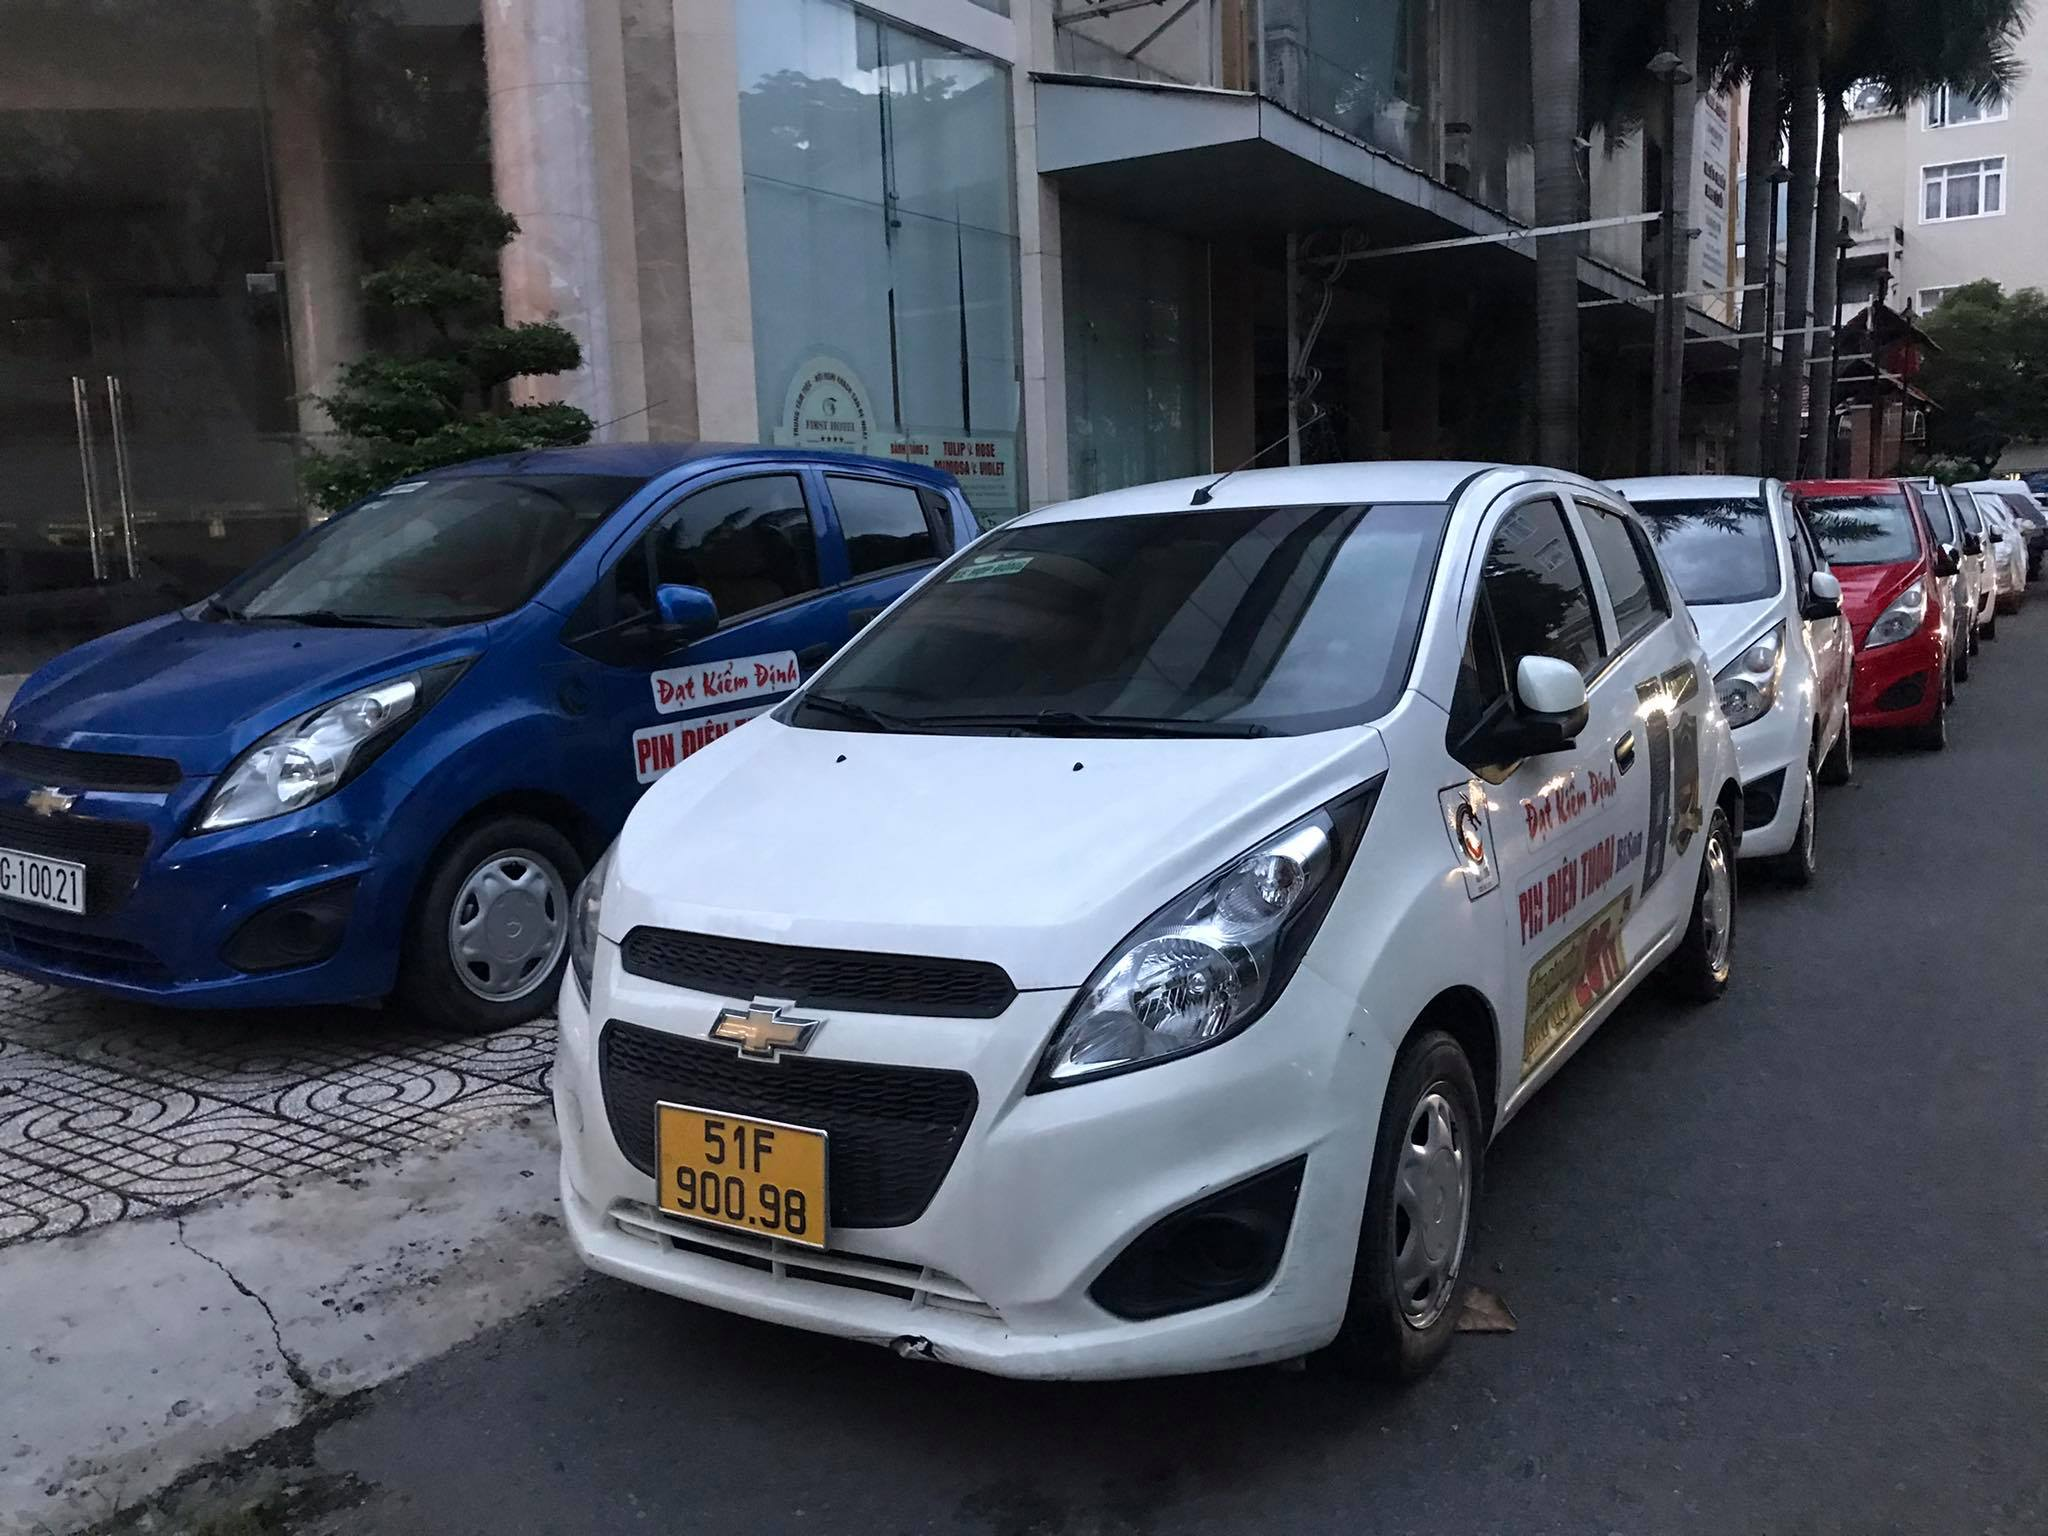 Grab re-operates with new service, GrabCar Protect, in Ho Chi Minh City